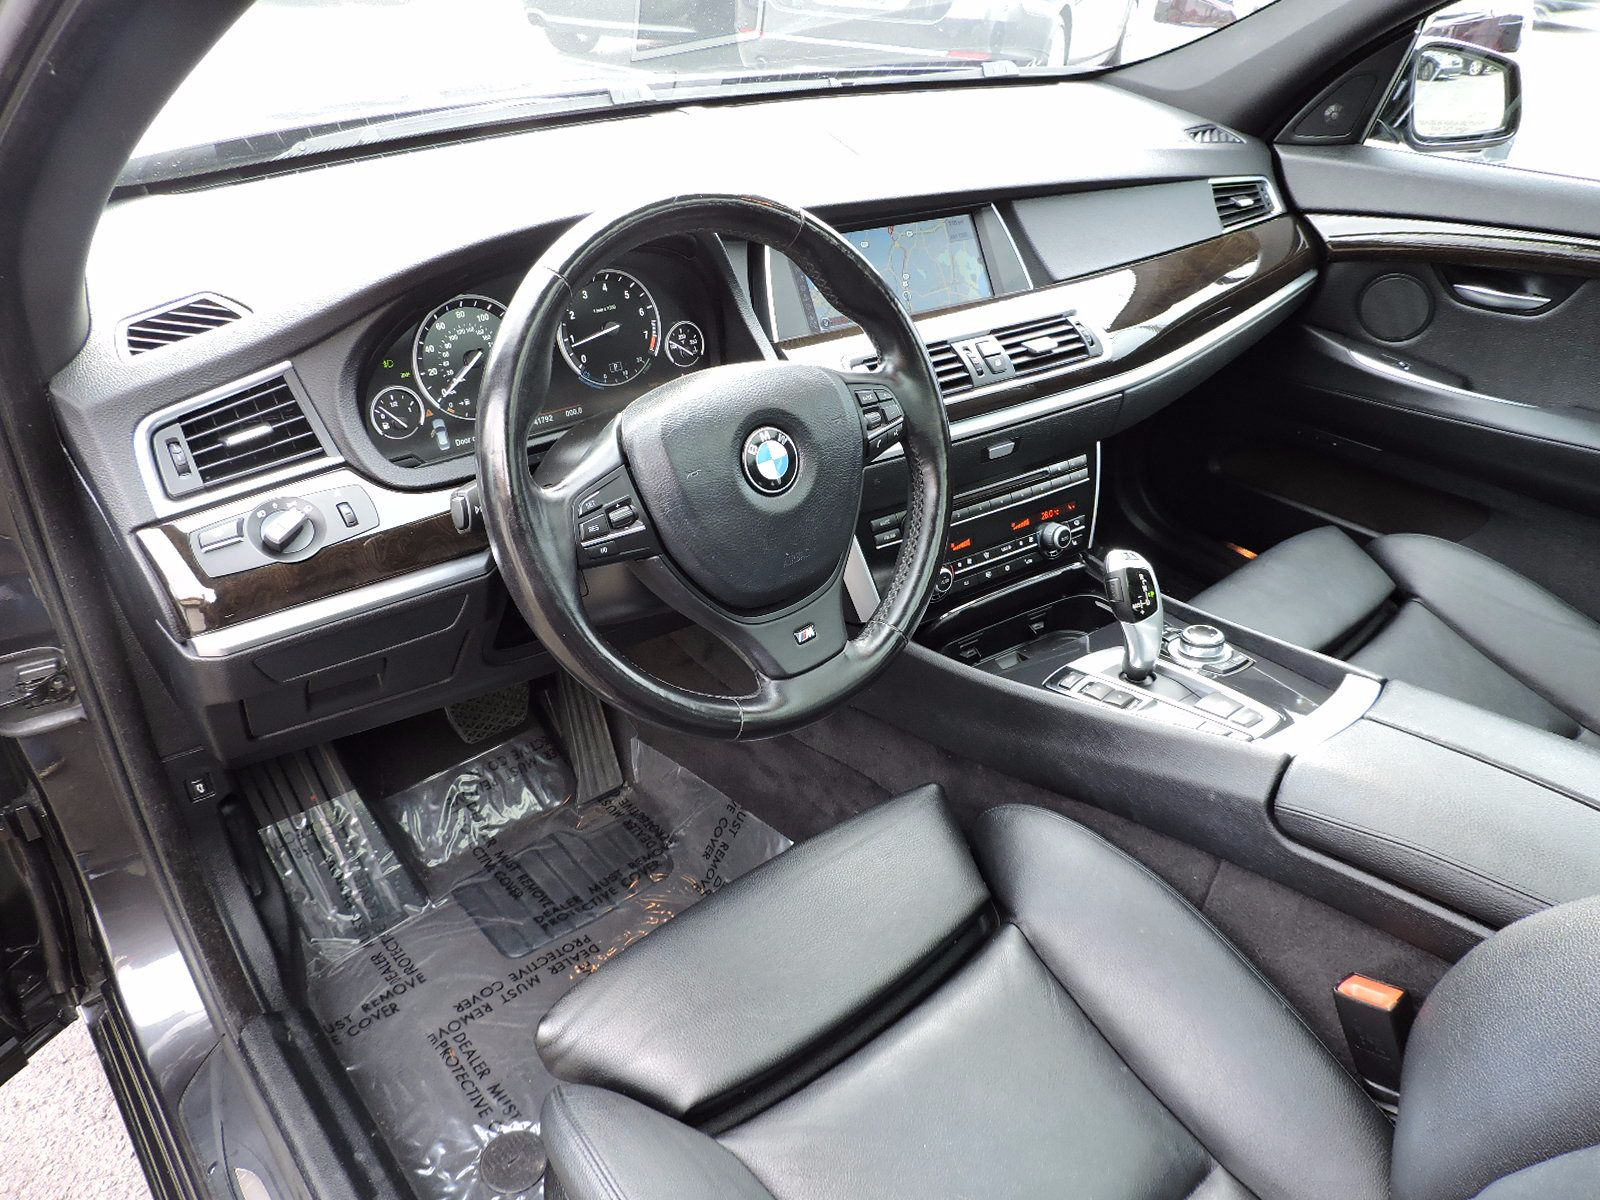 2012 BMW 550i xDrive GT Gran Turismo M Sport - All Wheel Drive - Navigation